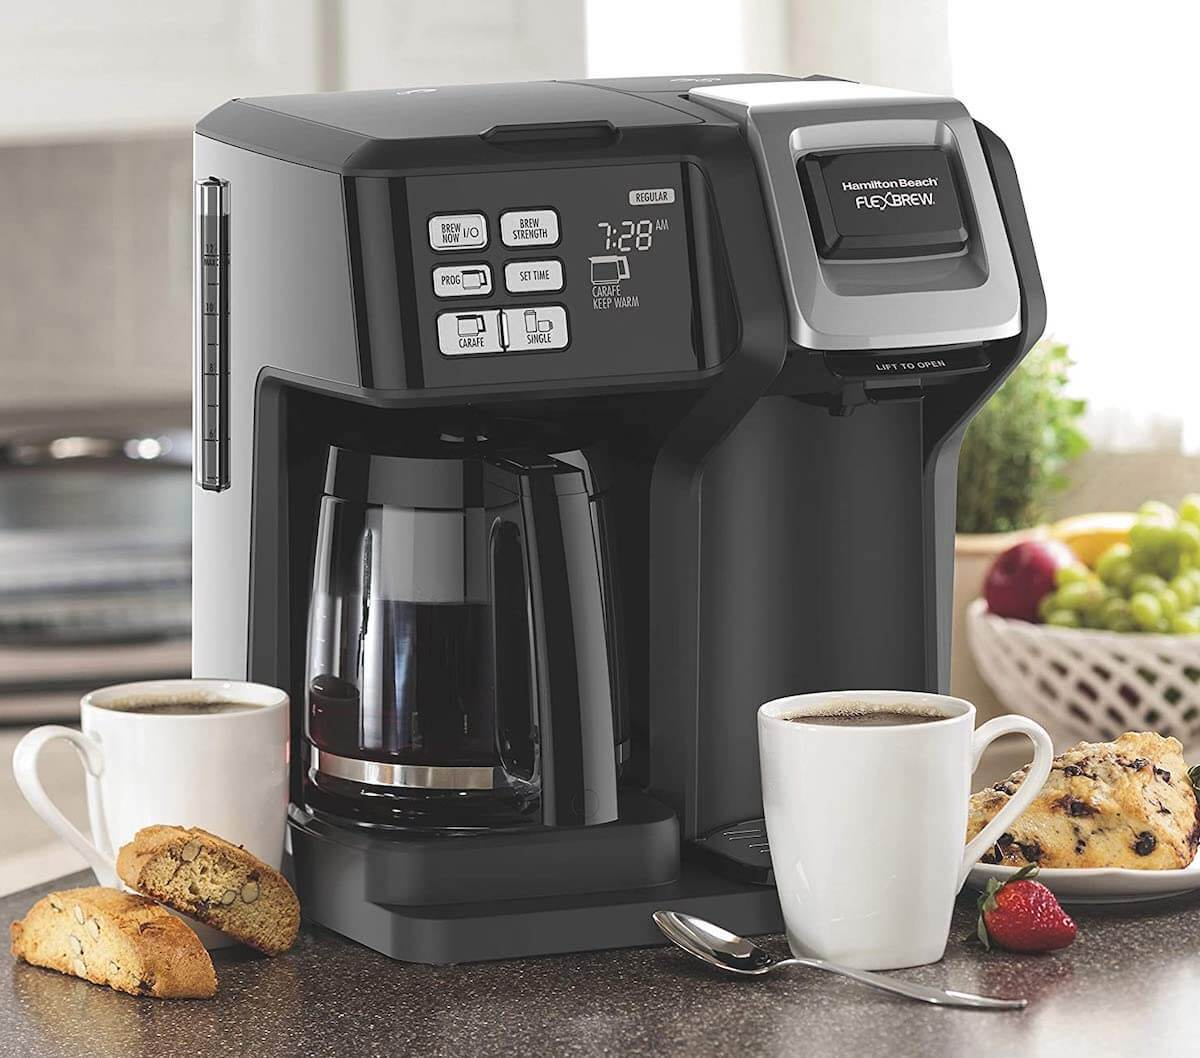 Top 7 Dual Coffee Makers – Review & Buyer's Guide